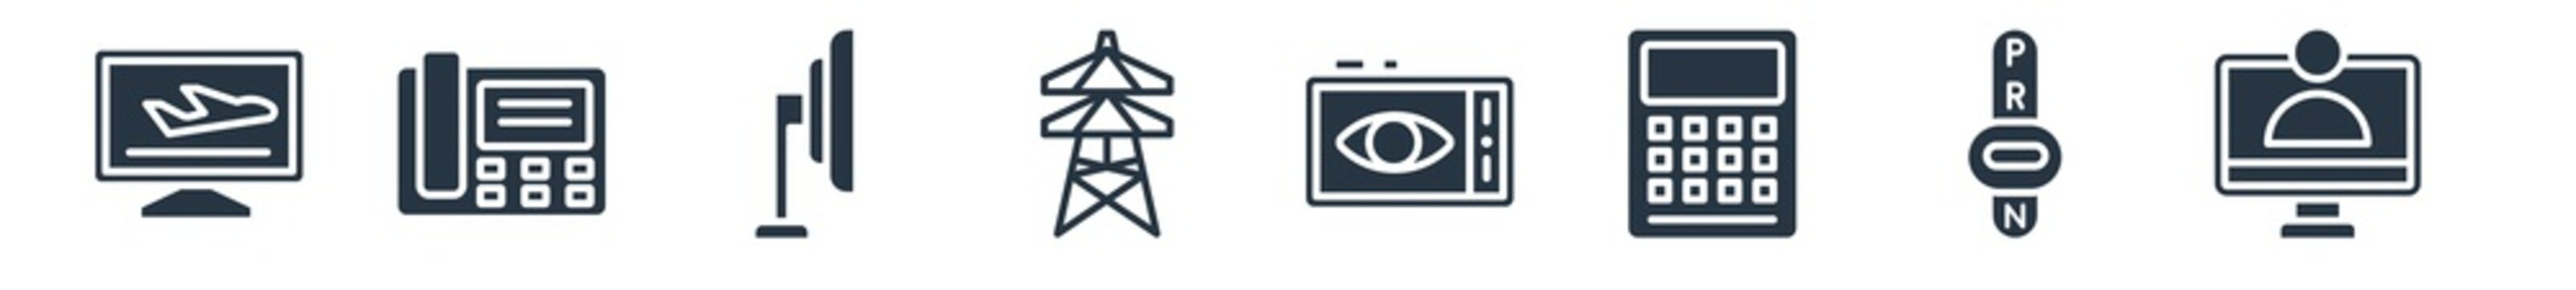 technology filled icons. glyph vector icons such as telemarketing, transmission, calculations, black eye, electric, tv side, fax phone sign isolated on white background.